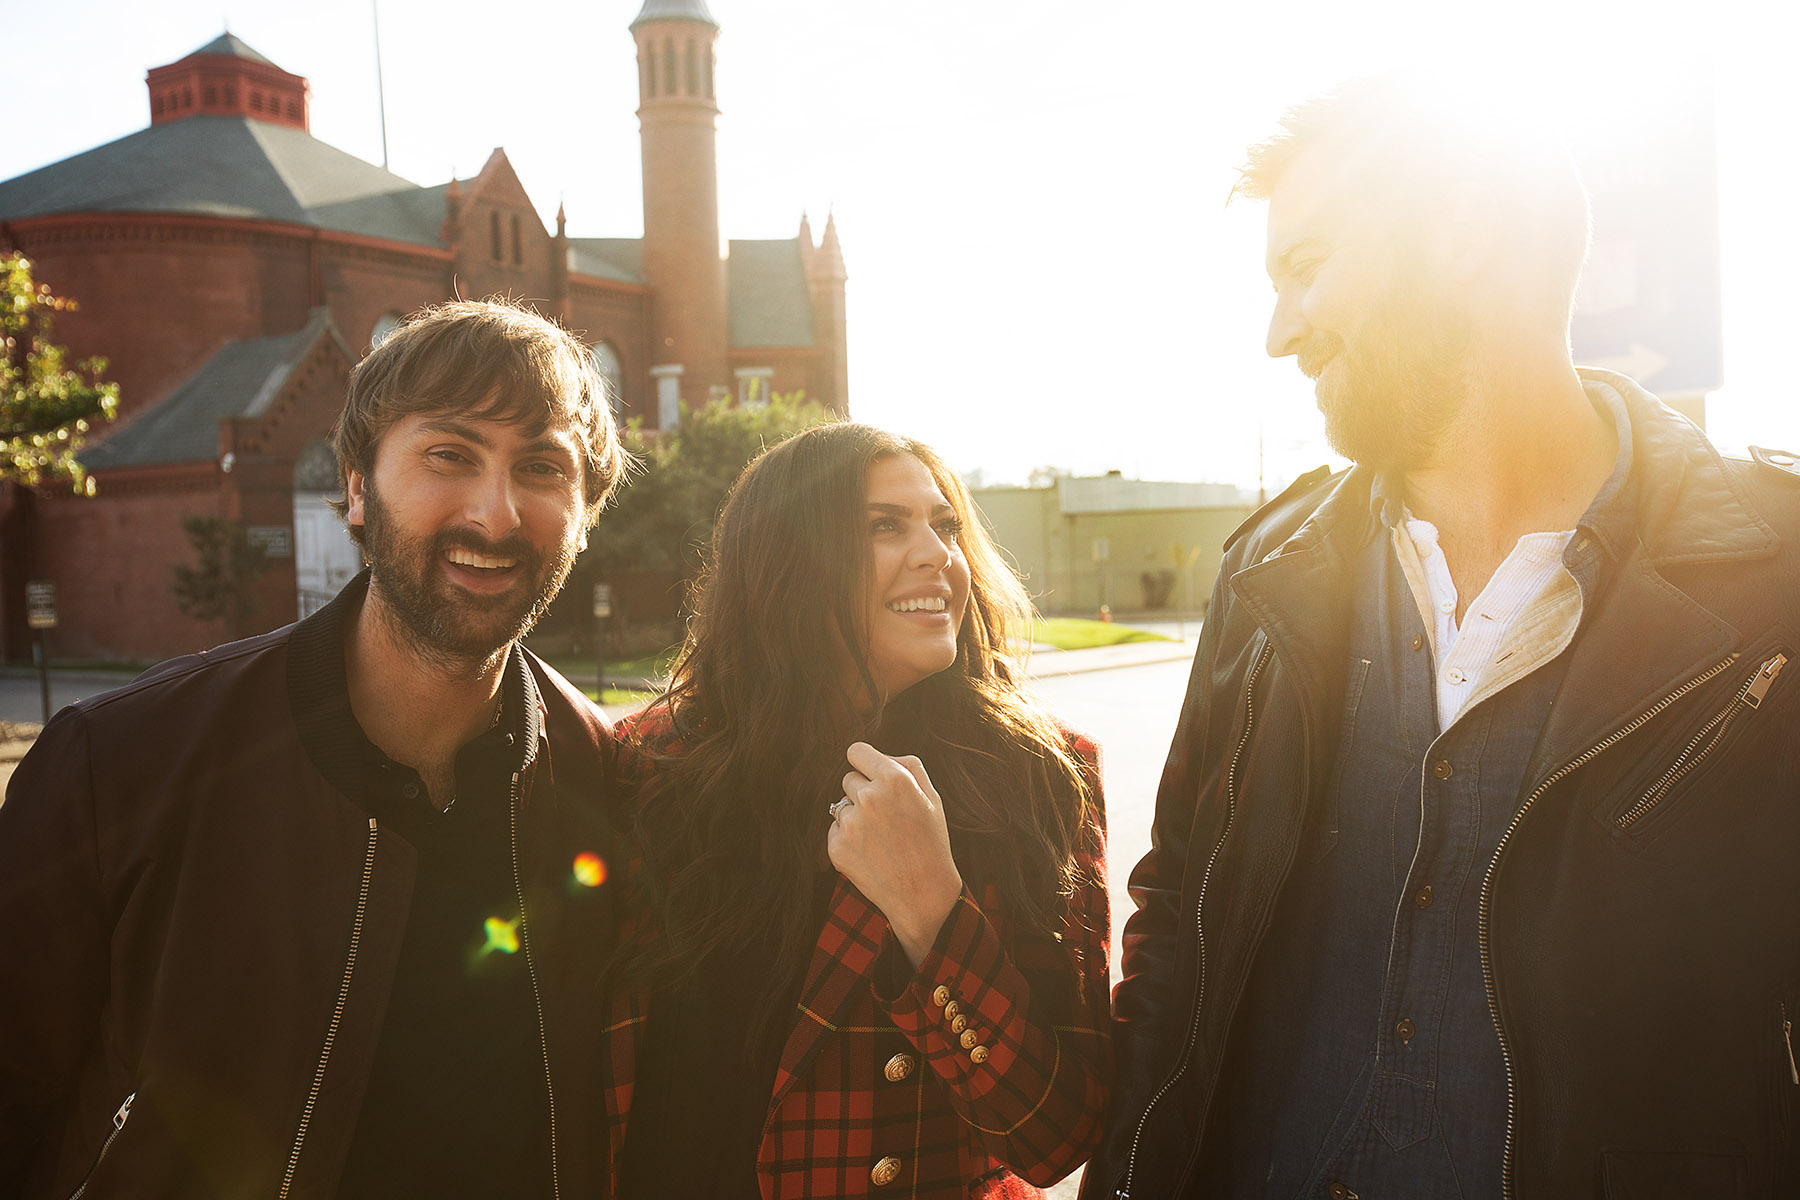 Lady Antebellum for Hilton by Boston based commercial celebrity photographer Brian Nevins